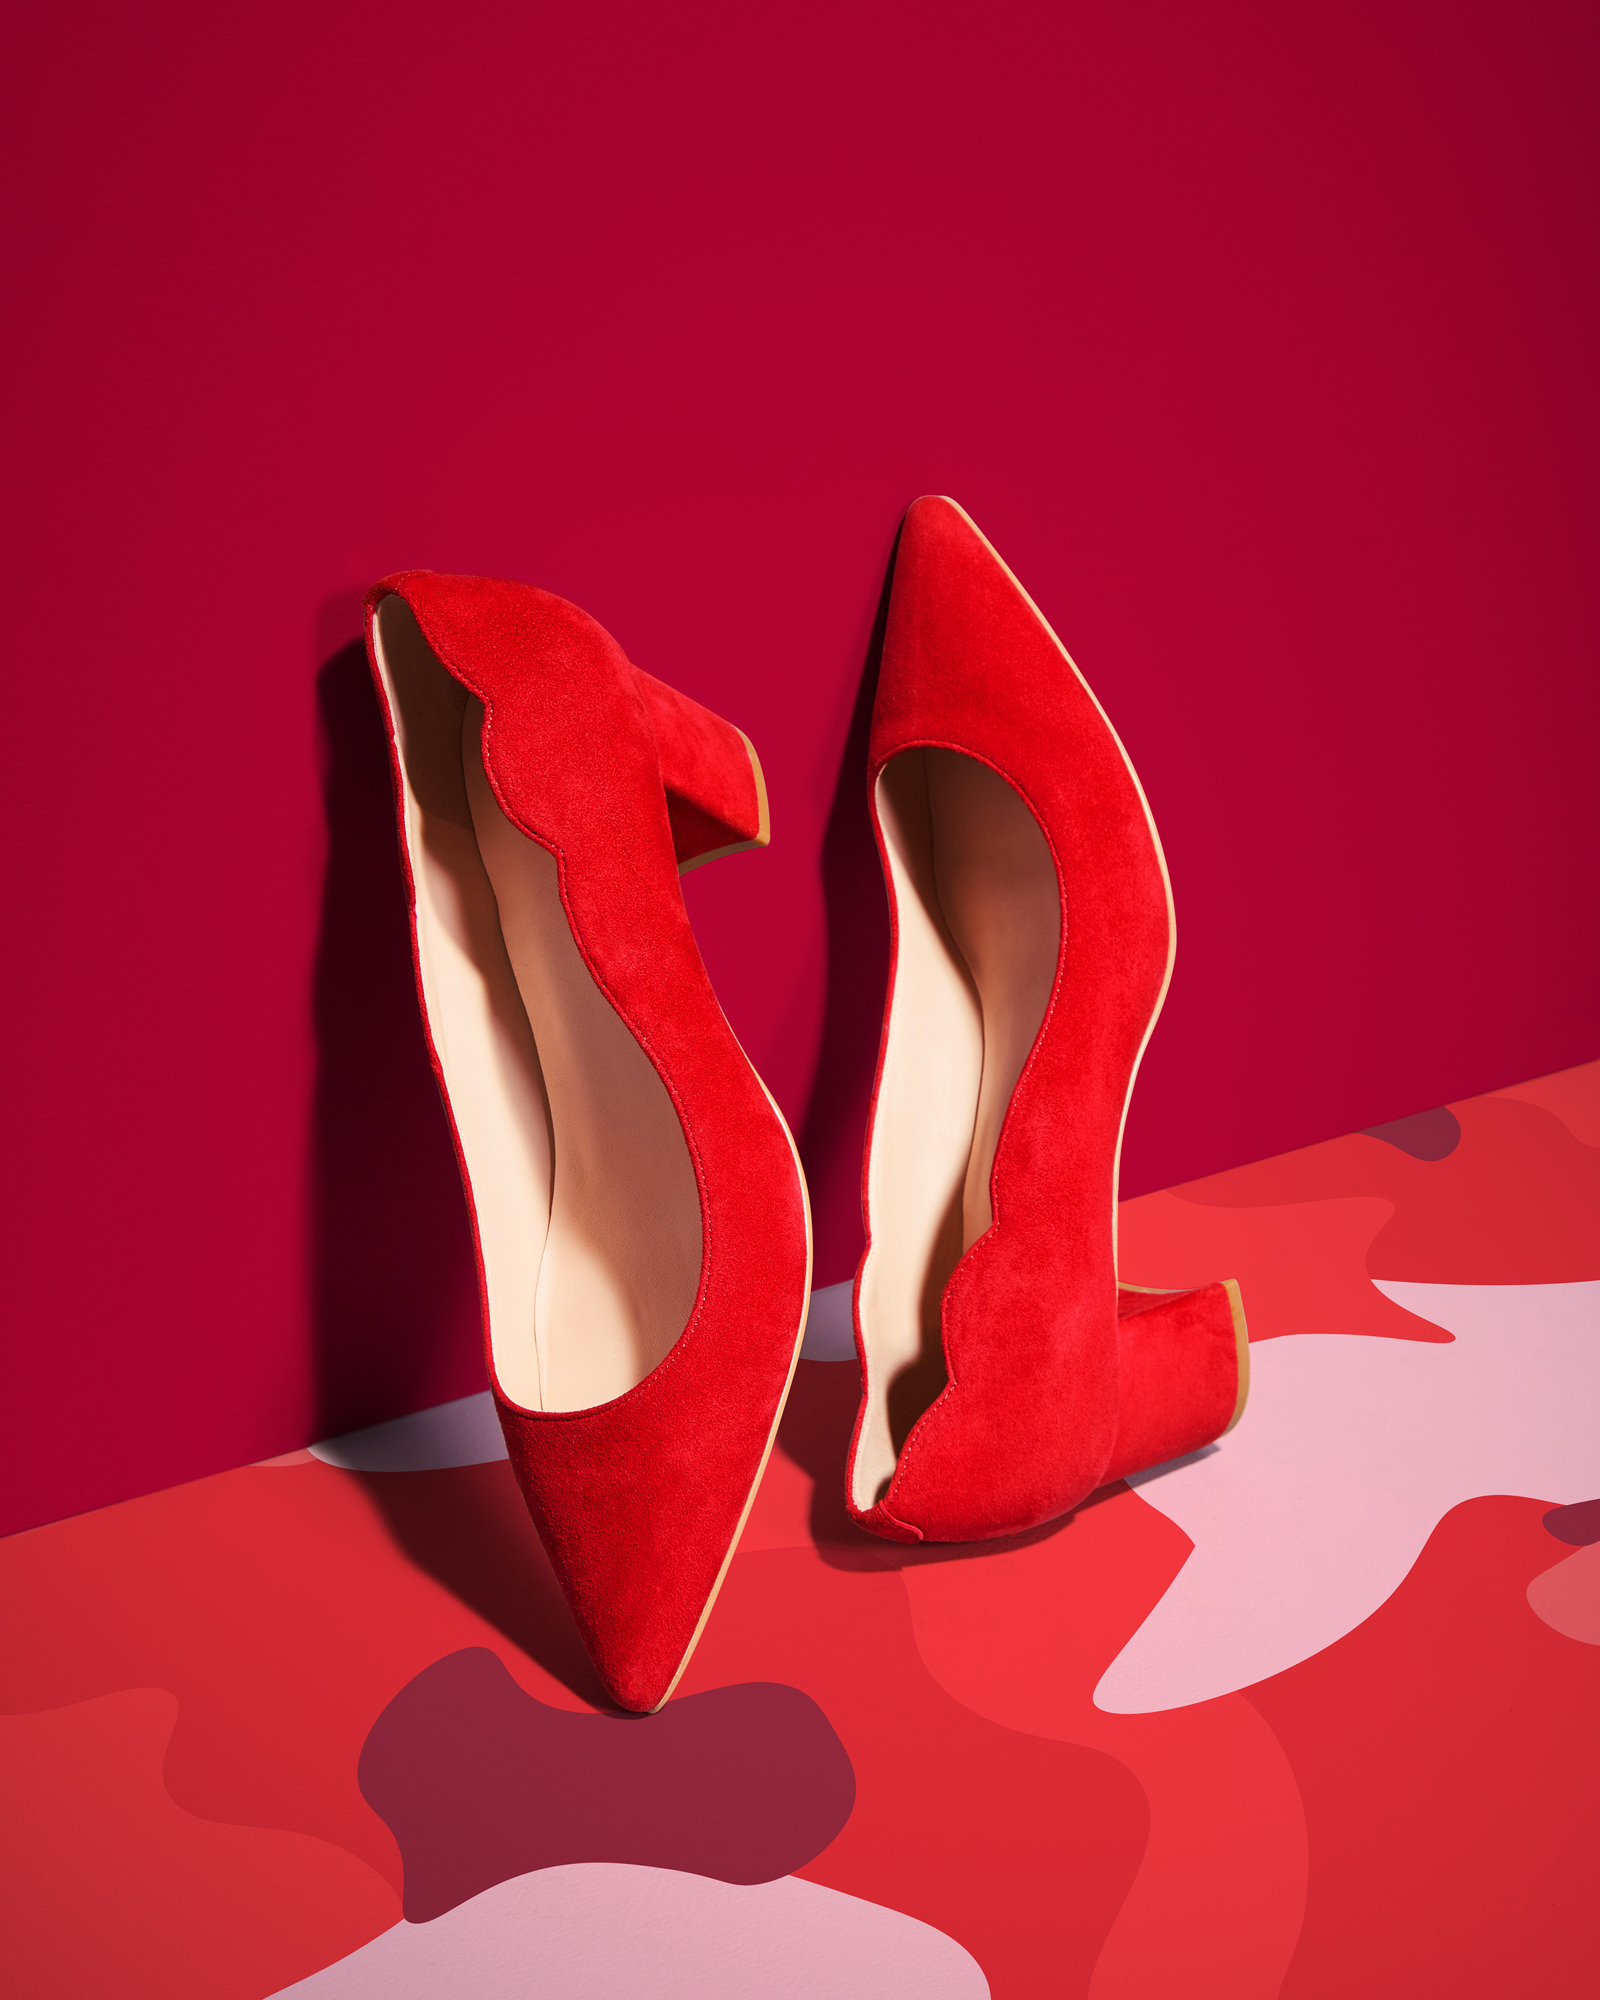 50234_TJ_NY_GO_SHOES_3_RED_PUMPS_072-R